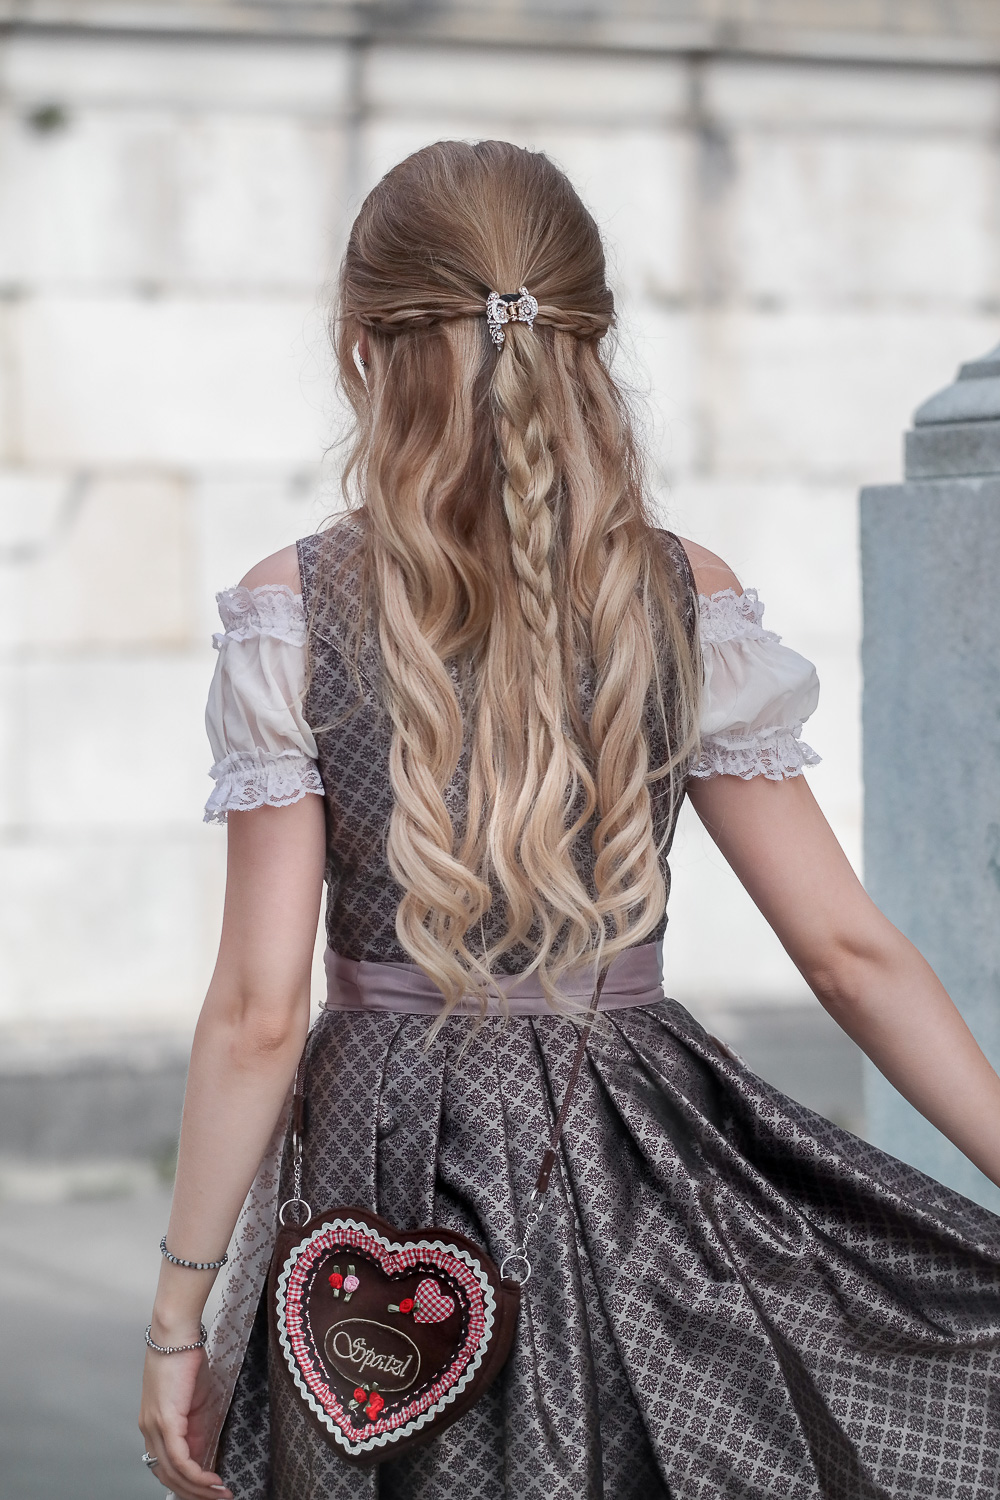 Haar Inspiration zur Wiesn Frisur-Hair Styling-geflochtener Zopf-Locken-blonde Haare